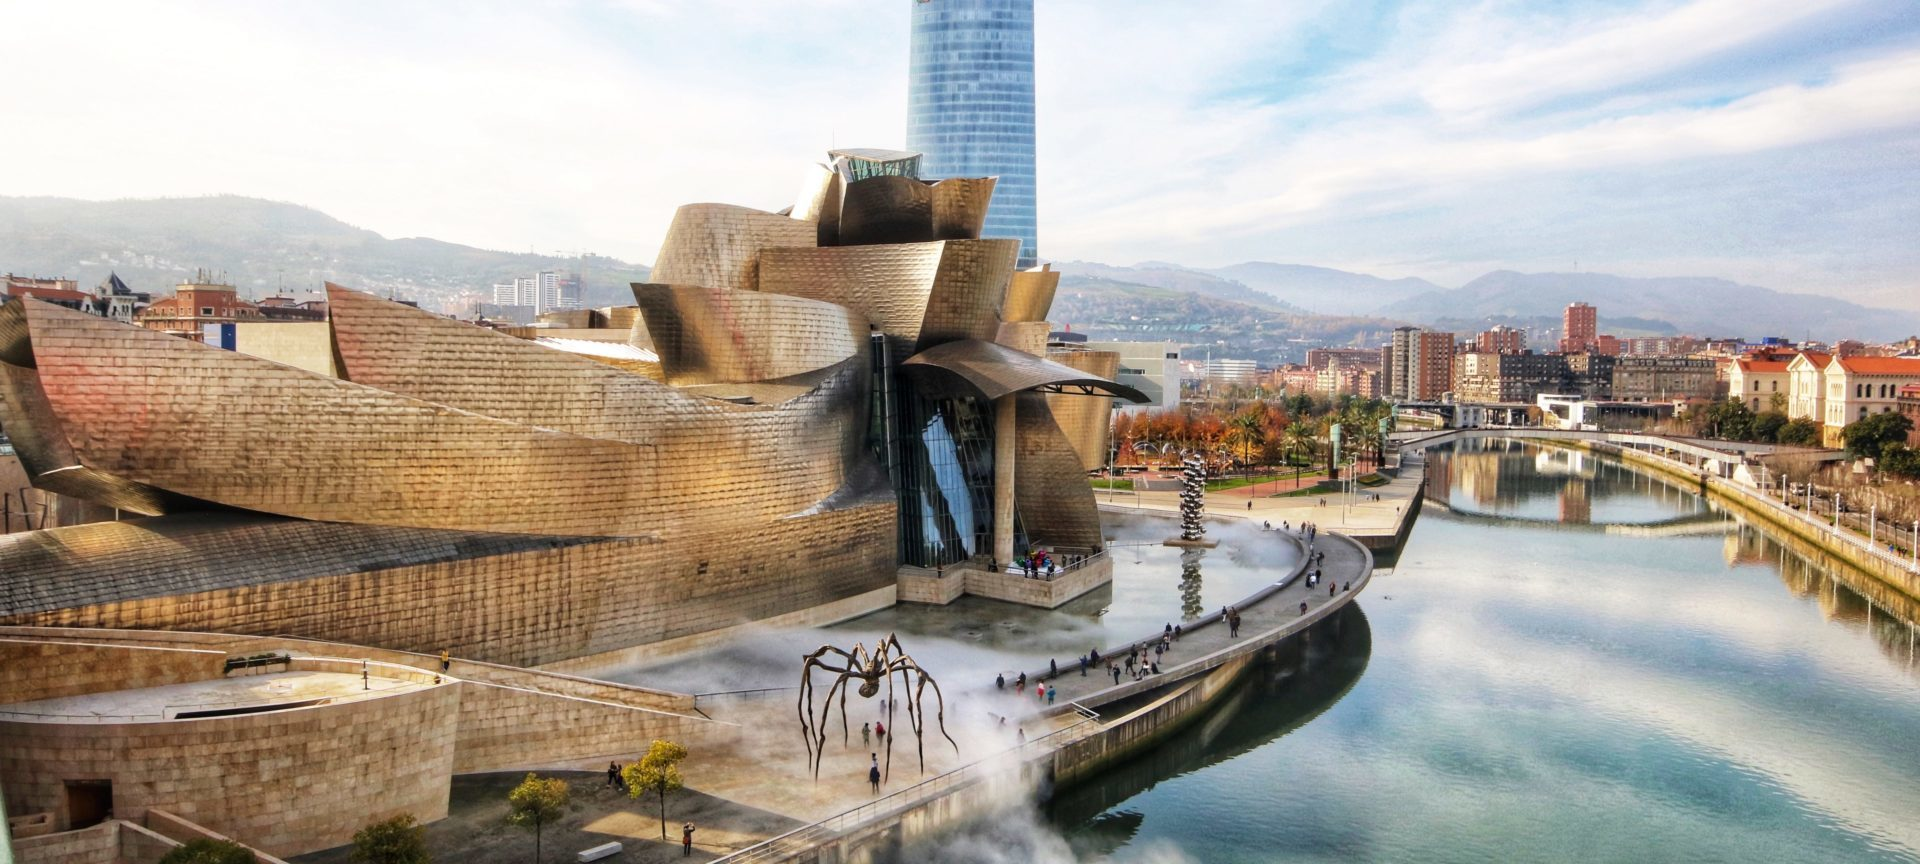 Art in Bilbao